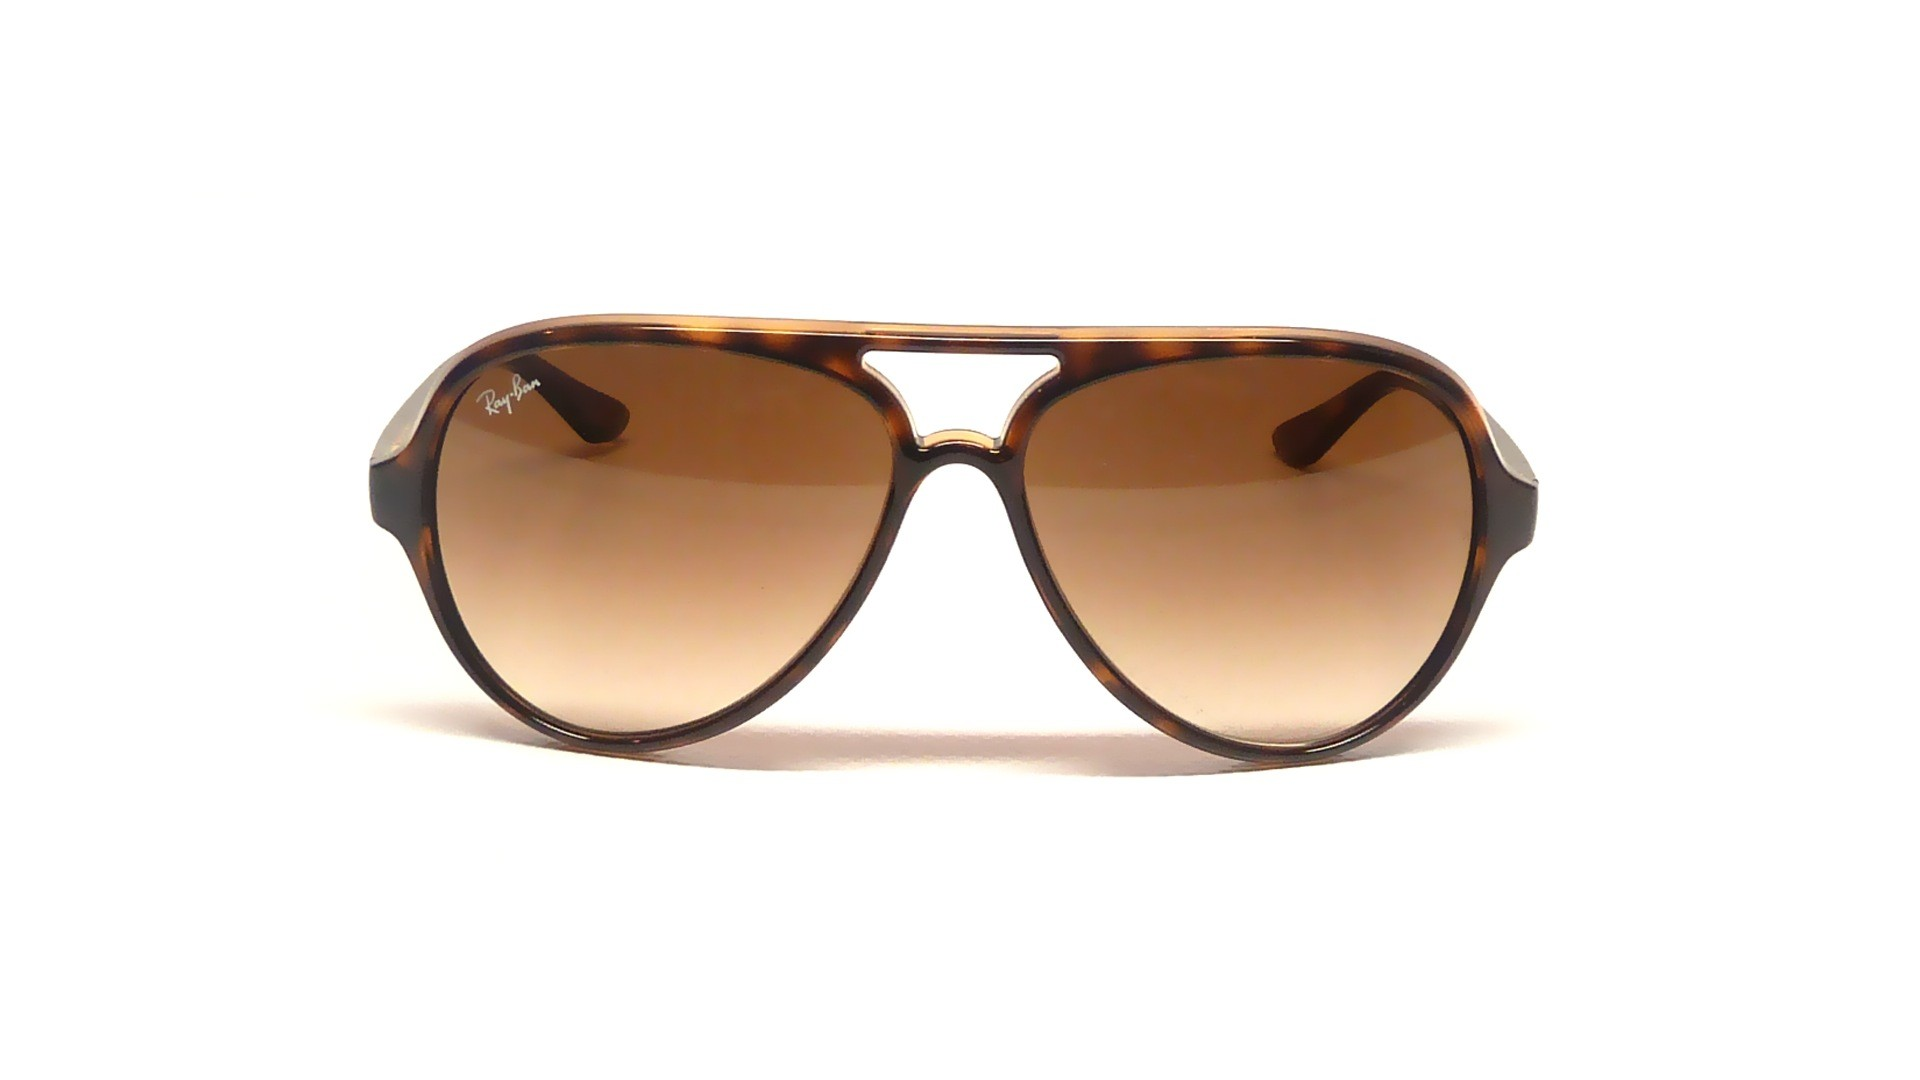 28a4b4204e Sunglasses Ray-Ban Cats 5000 Tortoise RB4125 710 51 59-15 Large Gradient